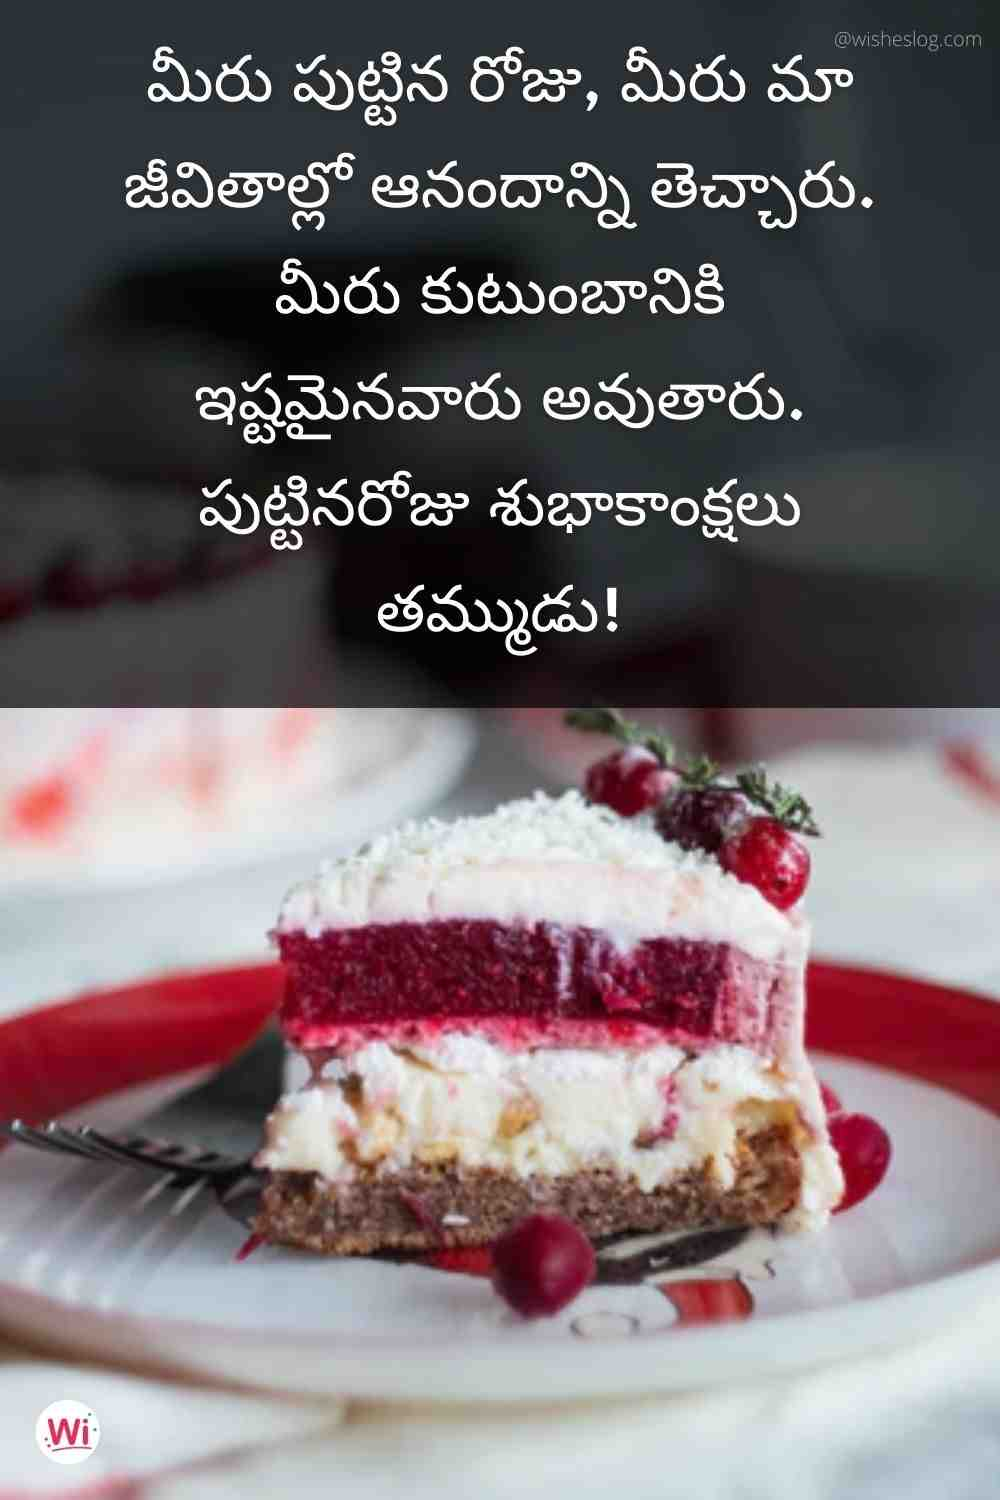 happy birthday wishes in telugu younger brother